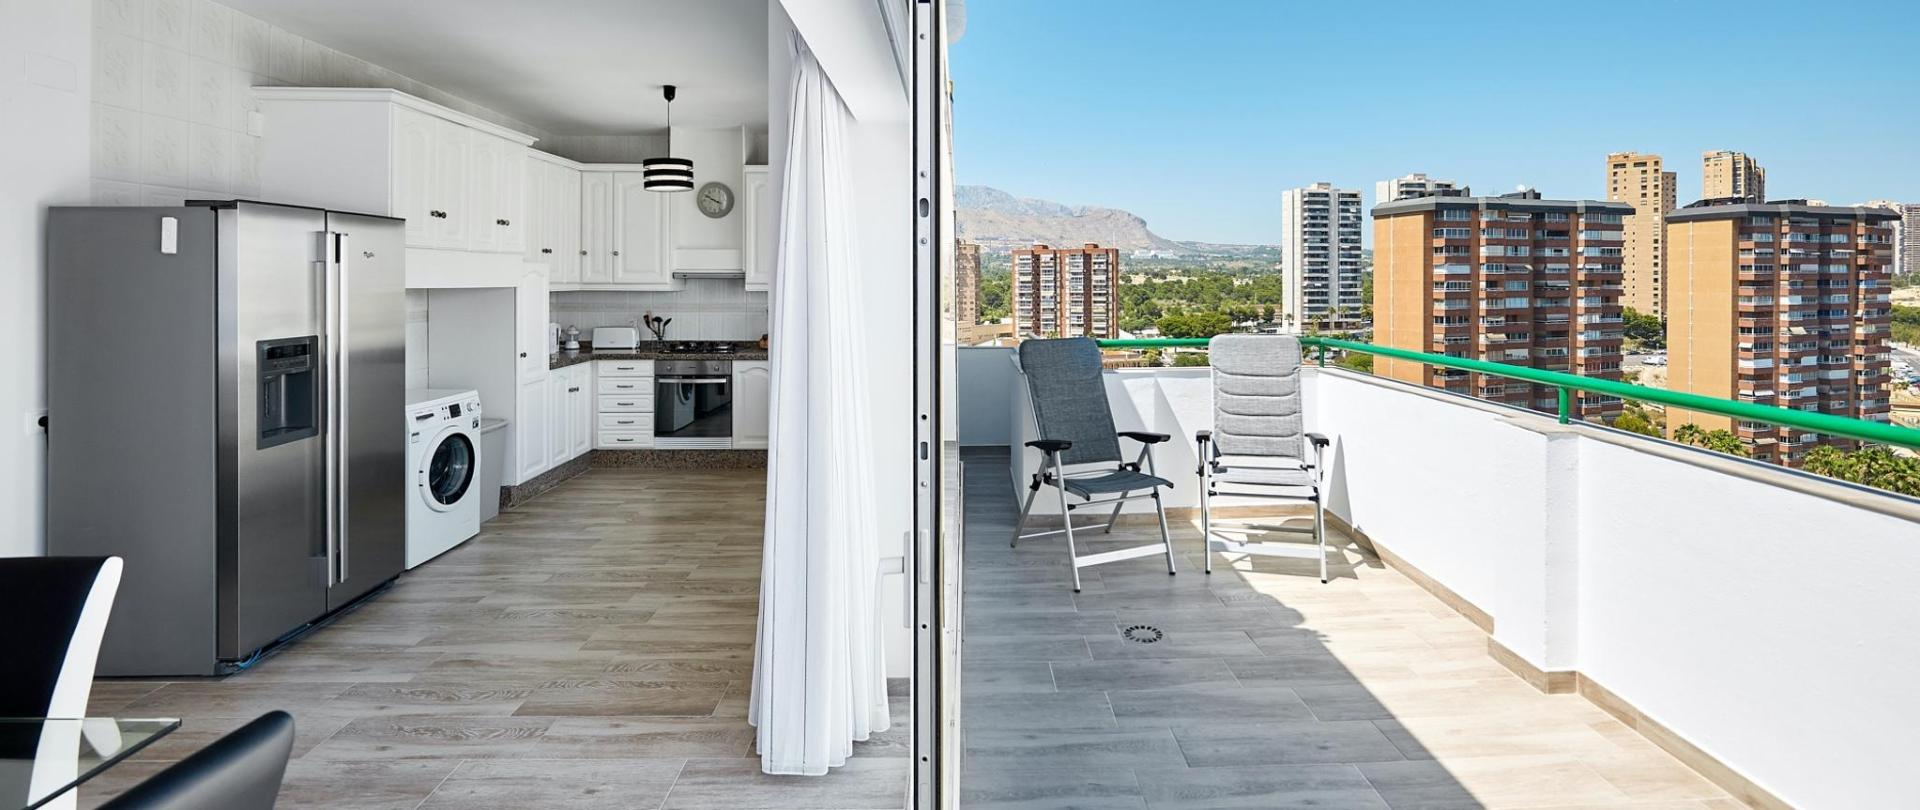 Sonrisa Apartments - Panoramic Penthouse with Sea View19.jpg